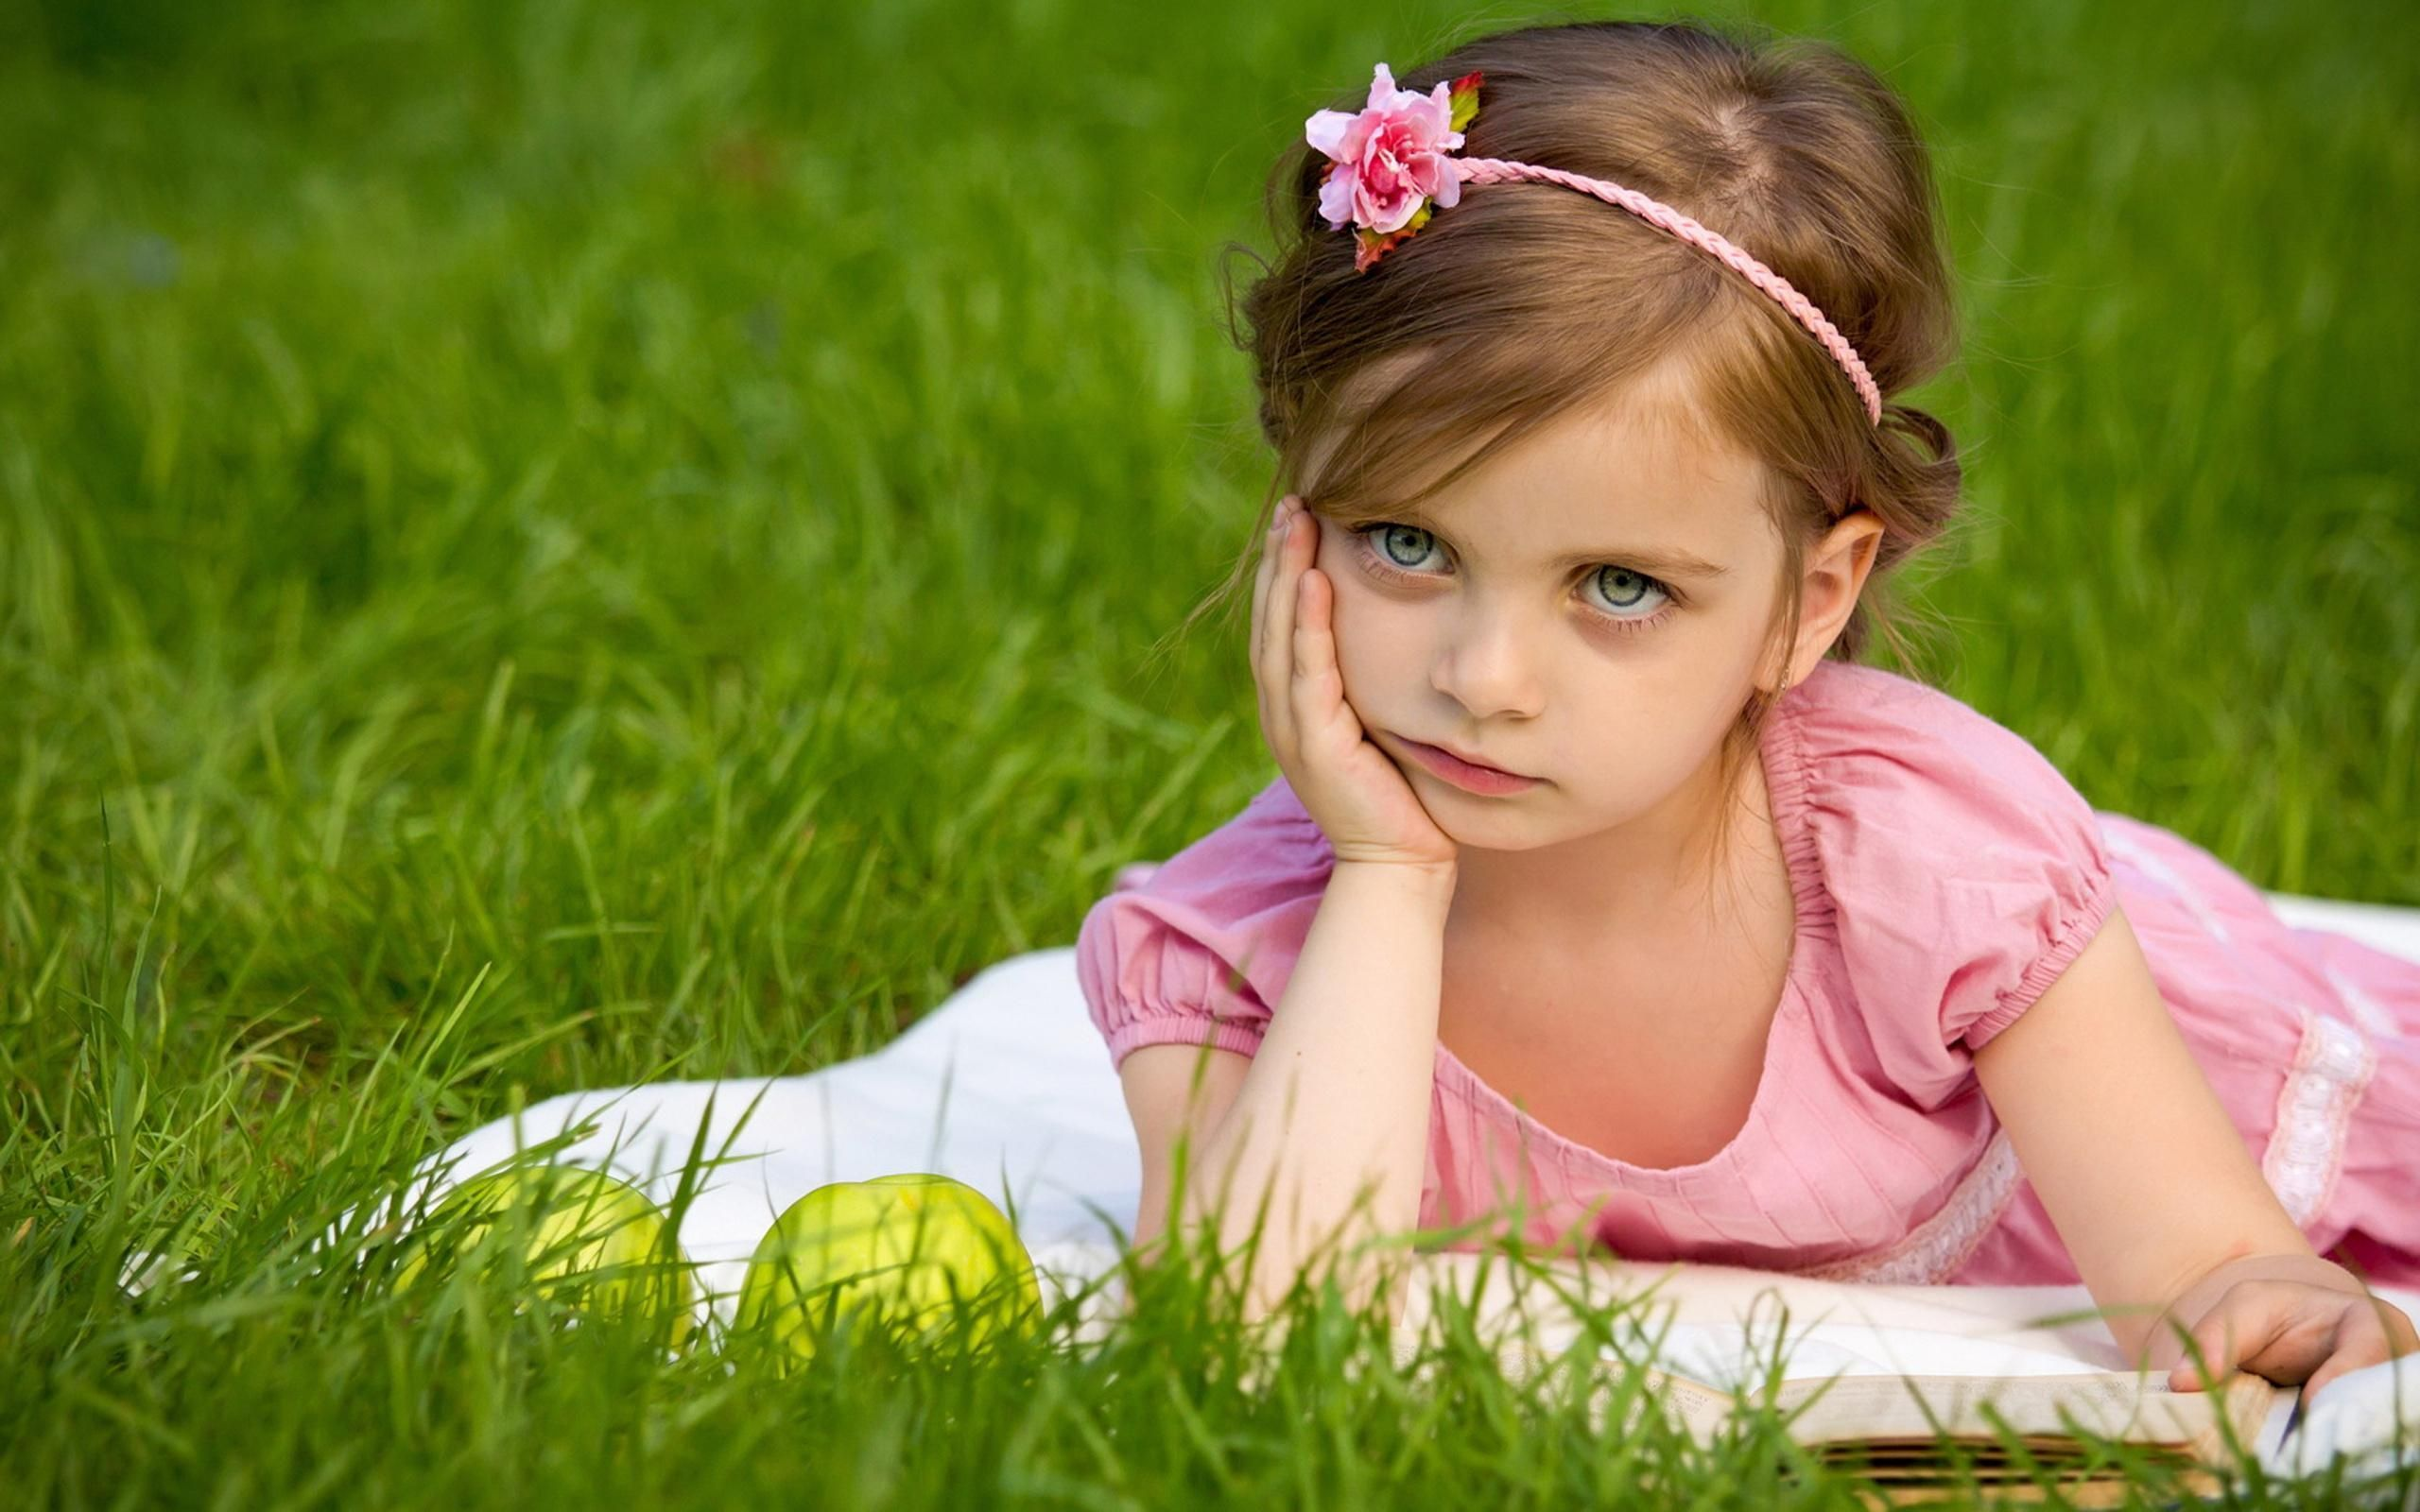 Desktop Cute Baby Girl Images Hd Pop On Girls Pictures Of Pc ...